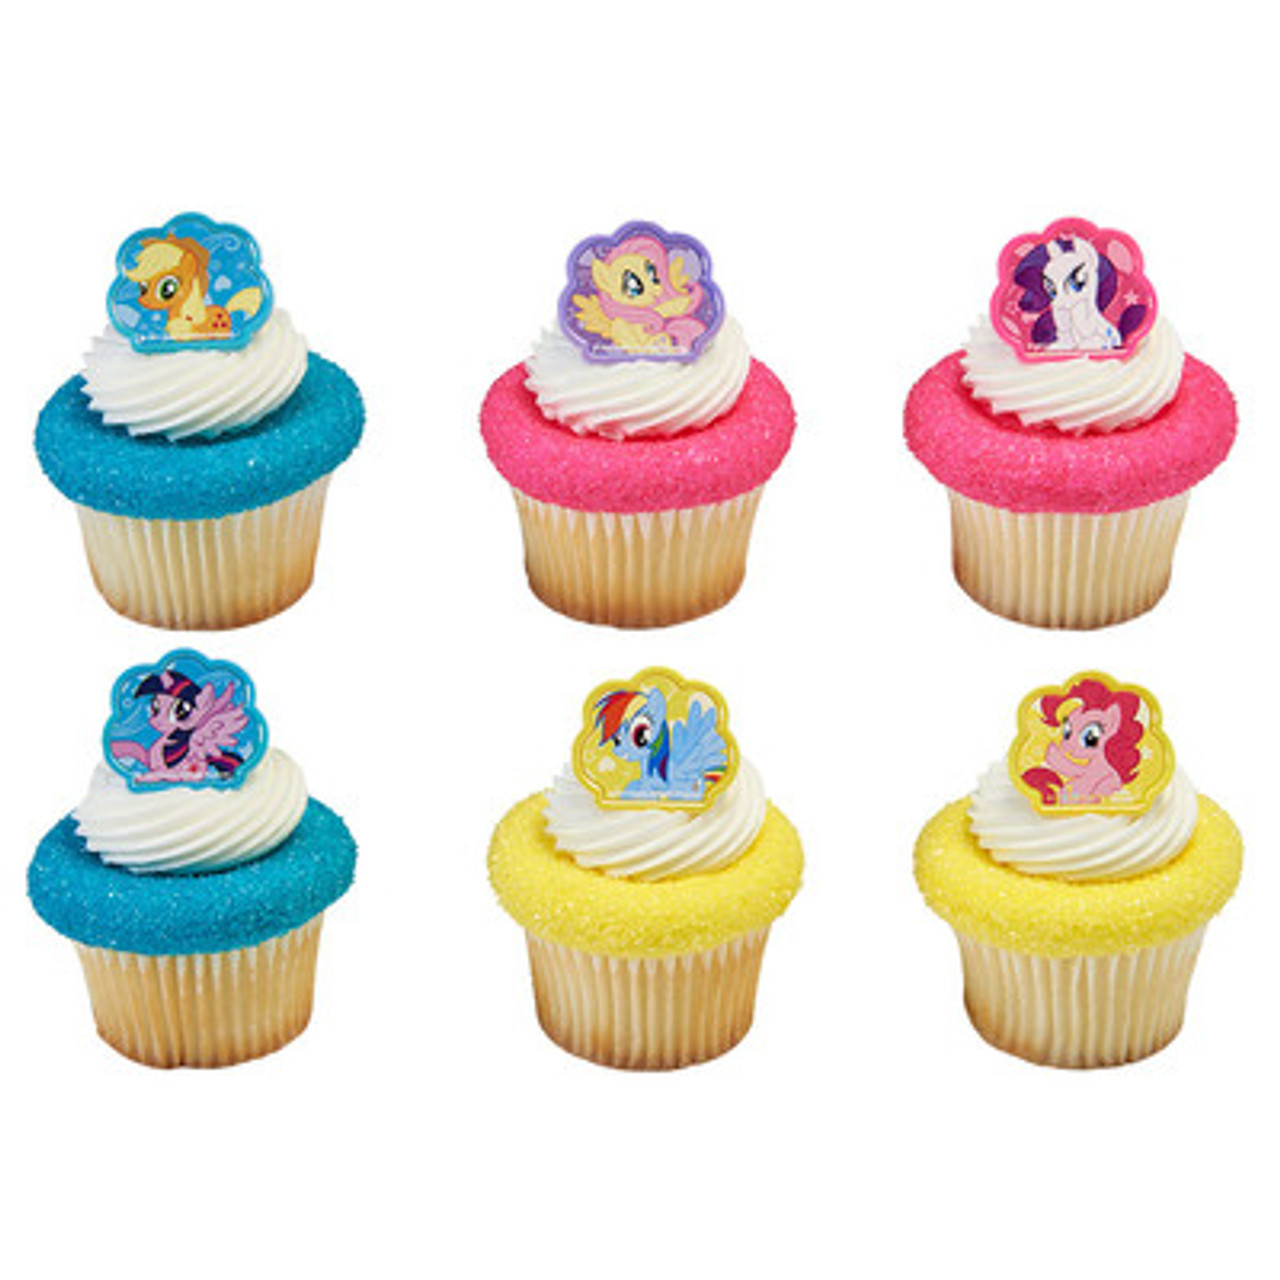 Enjoyable My Little Pony Cake And Cupcake Toppers Funny Birthday Cards Online Kookostrdamsfinfo